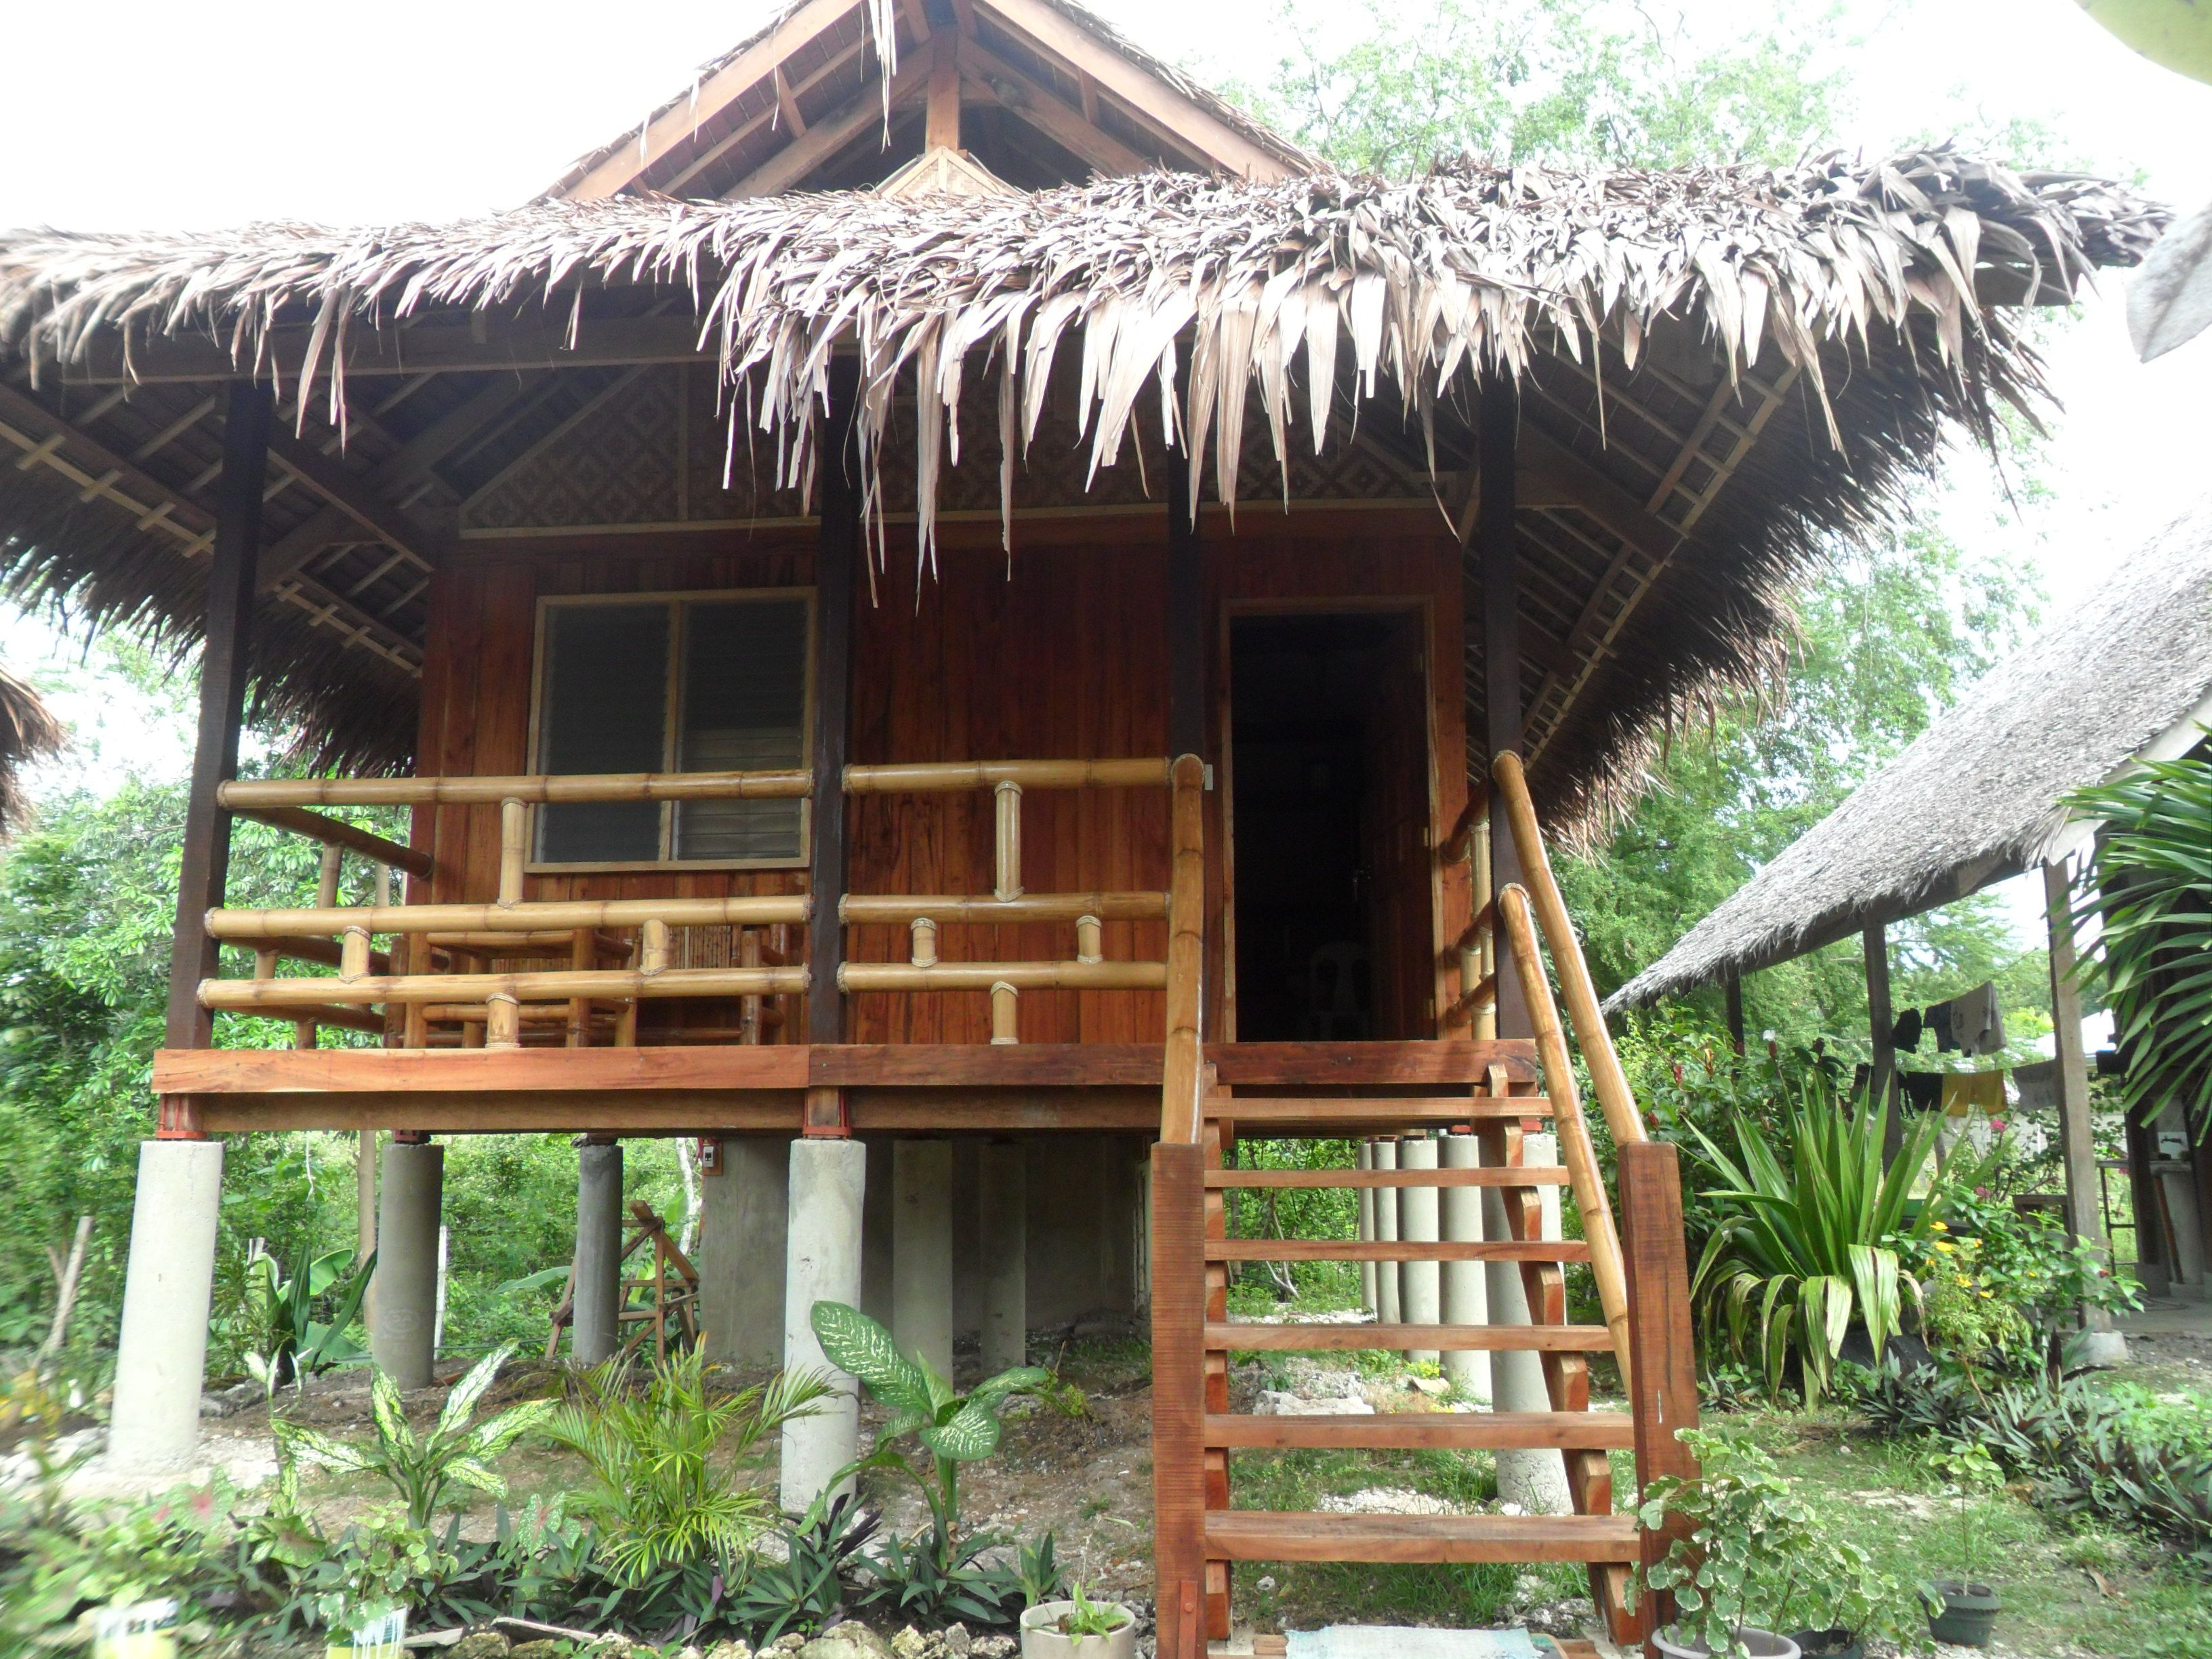 Native house design in the philippines construction styles world